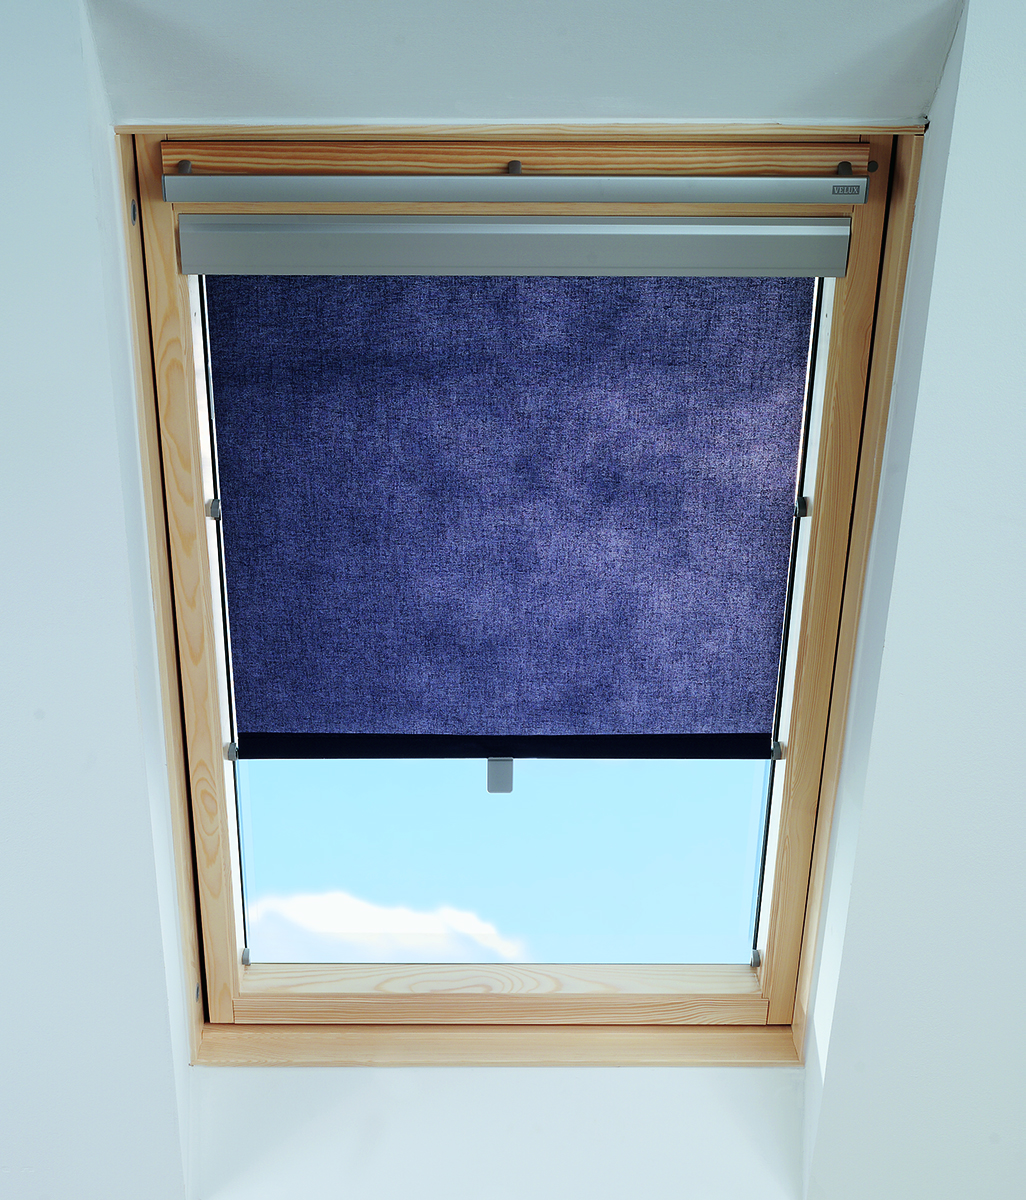 Velux security lock safe and secure roof window skylight for Velux skylight control rod